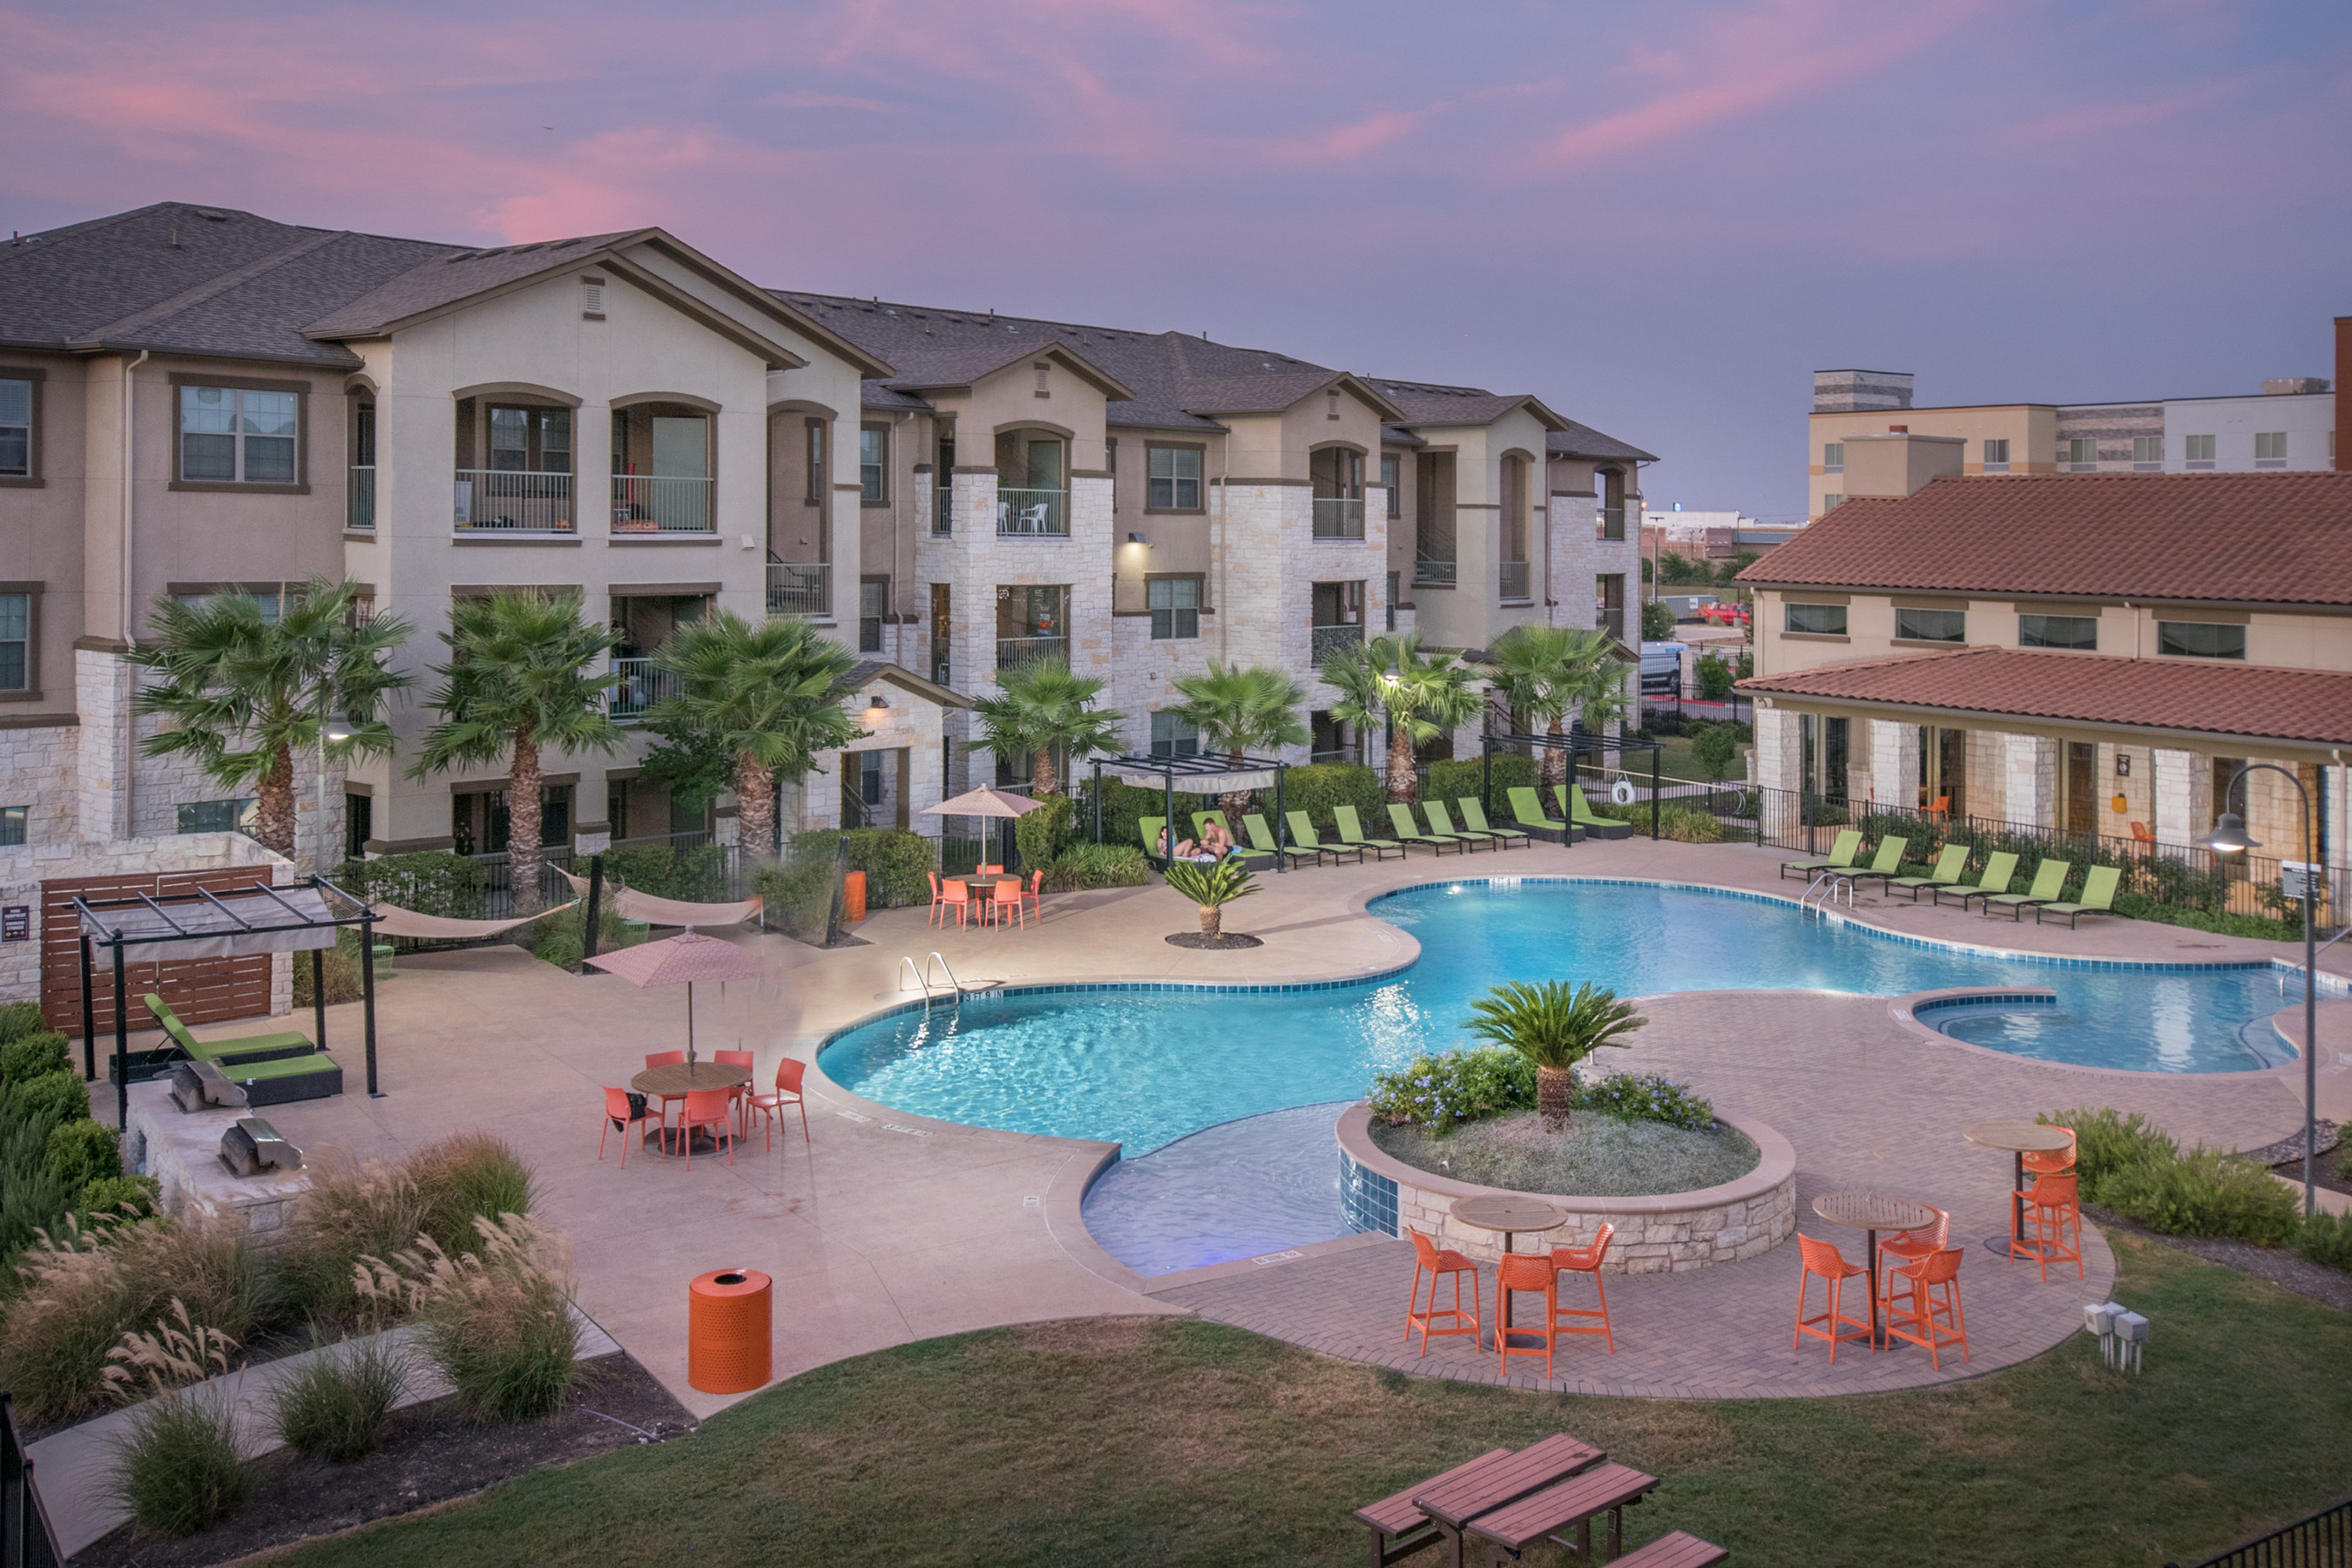 Olympus Property Acquires Carrington Oaks Apartment Community in Austin Suburb